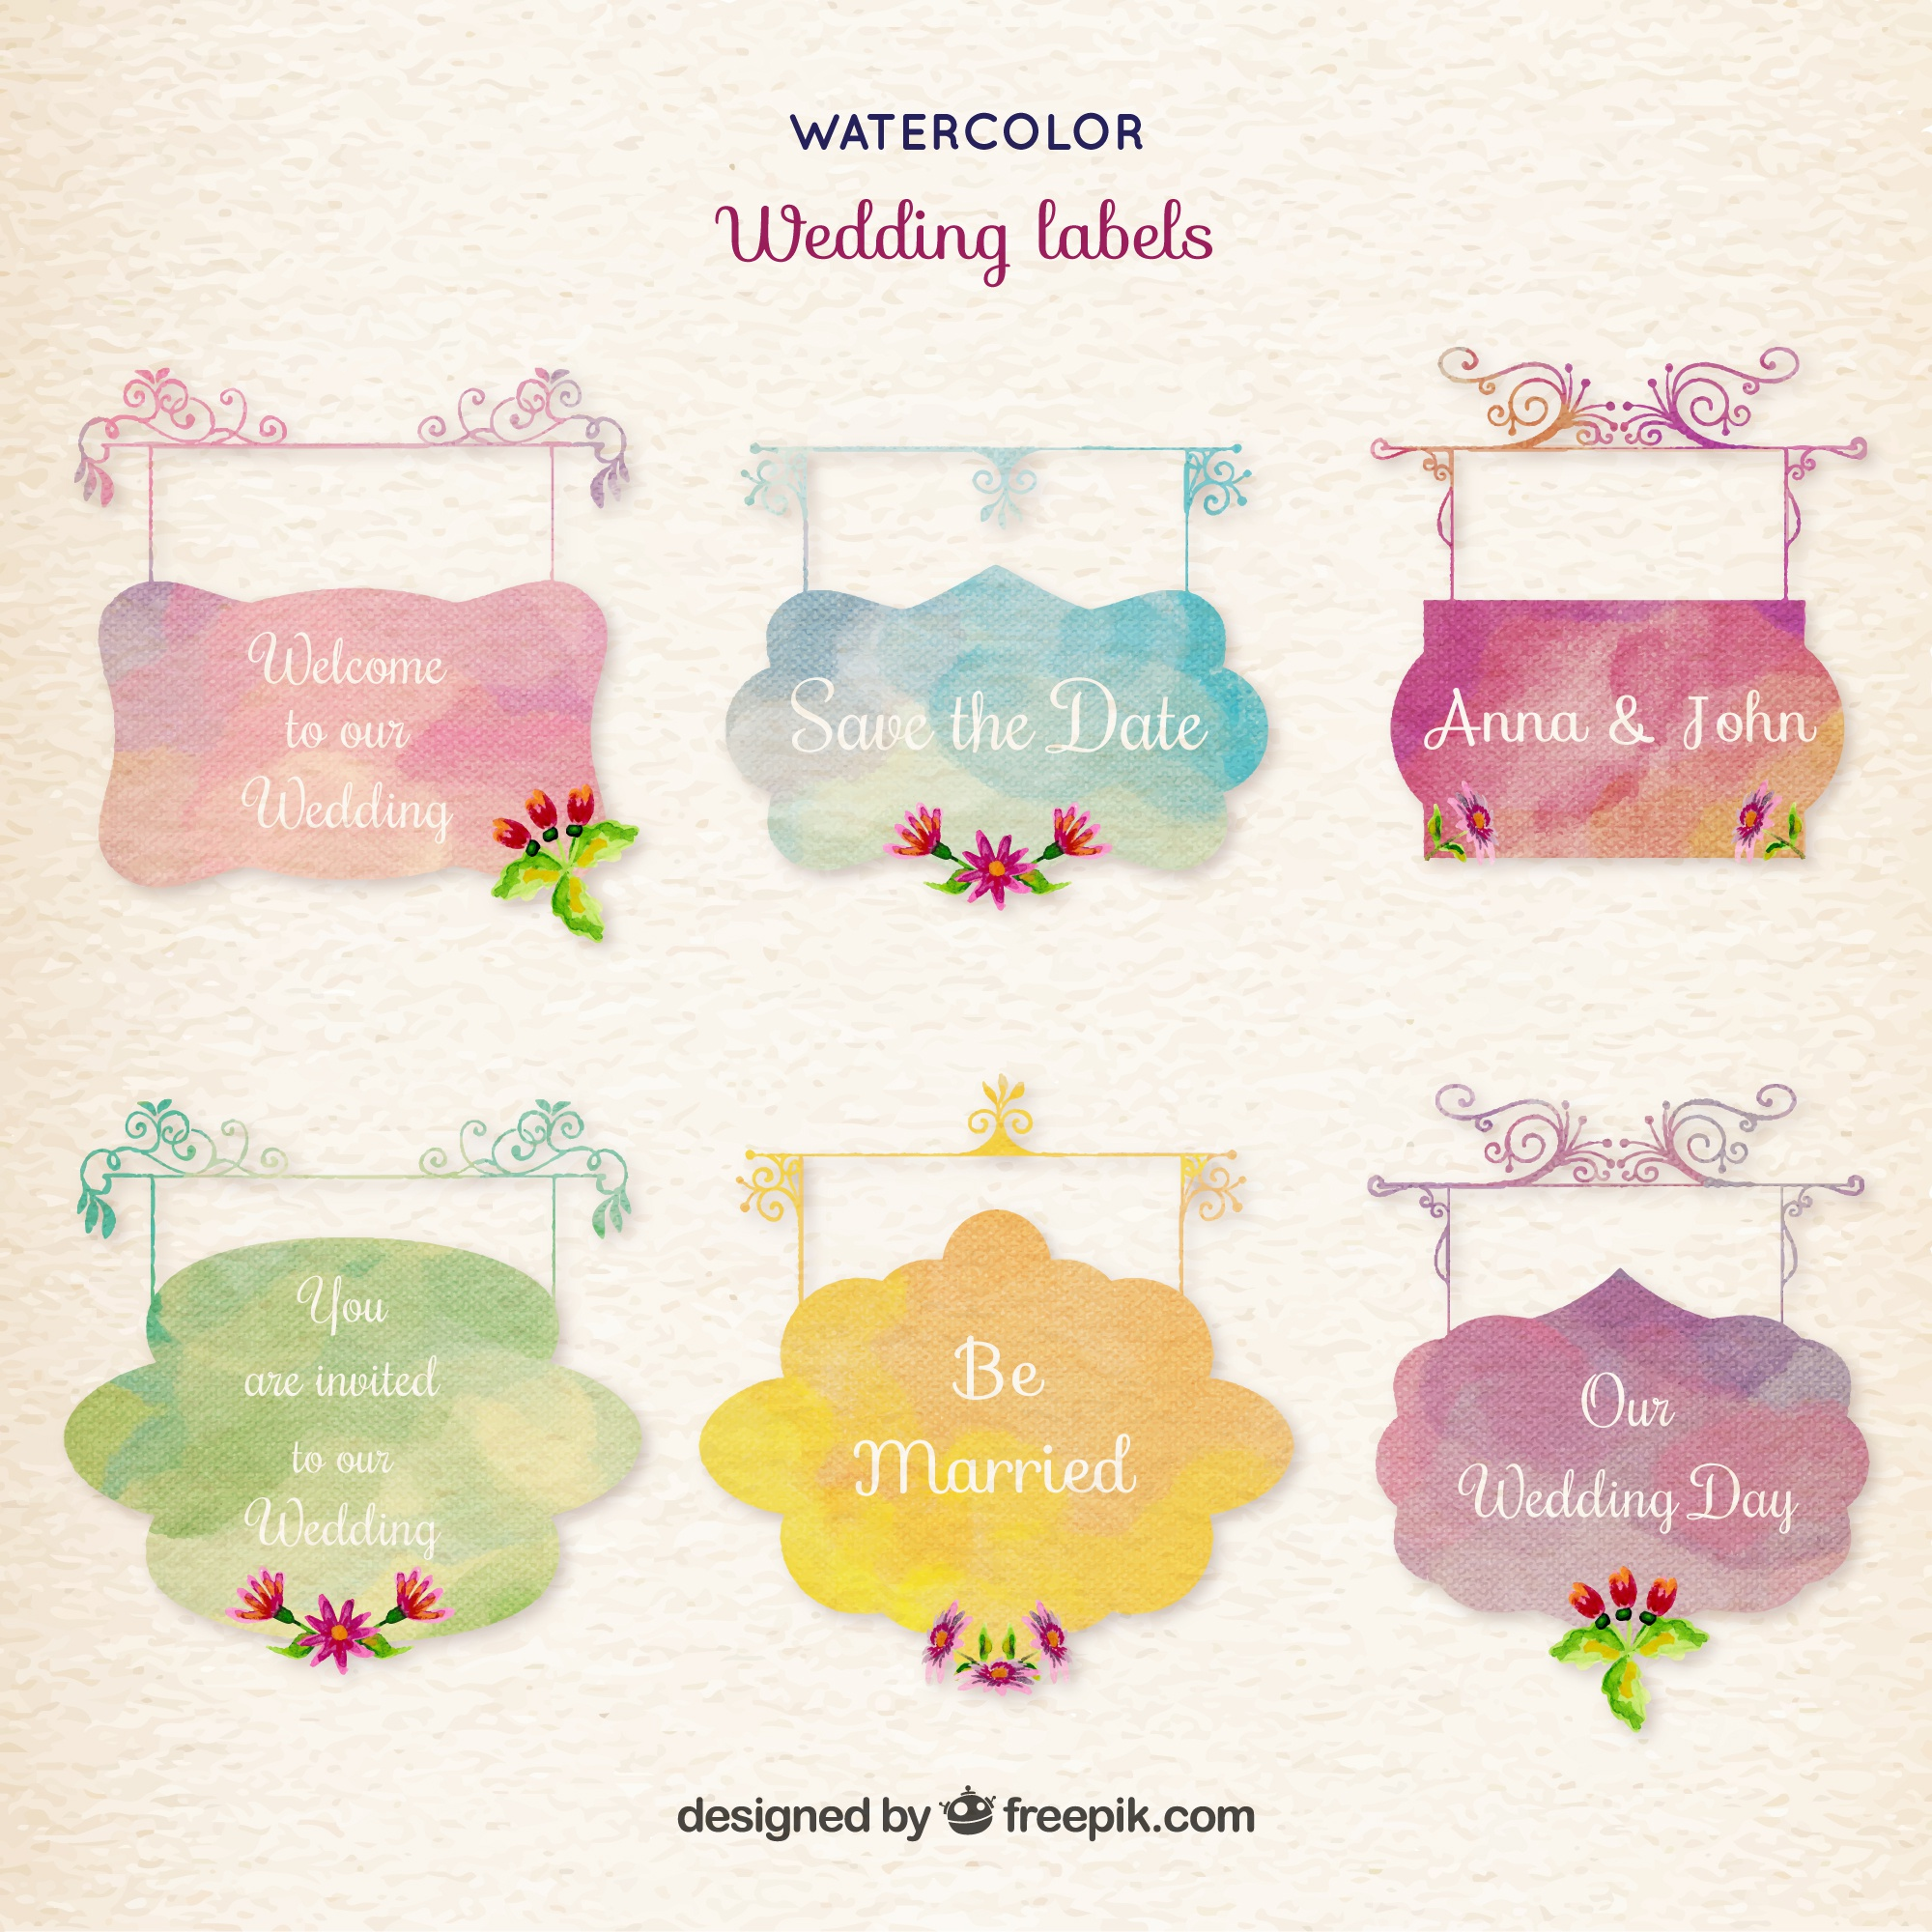 Watercolor wedding labels